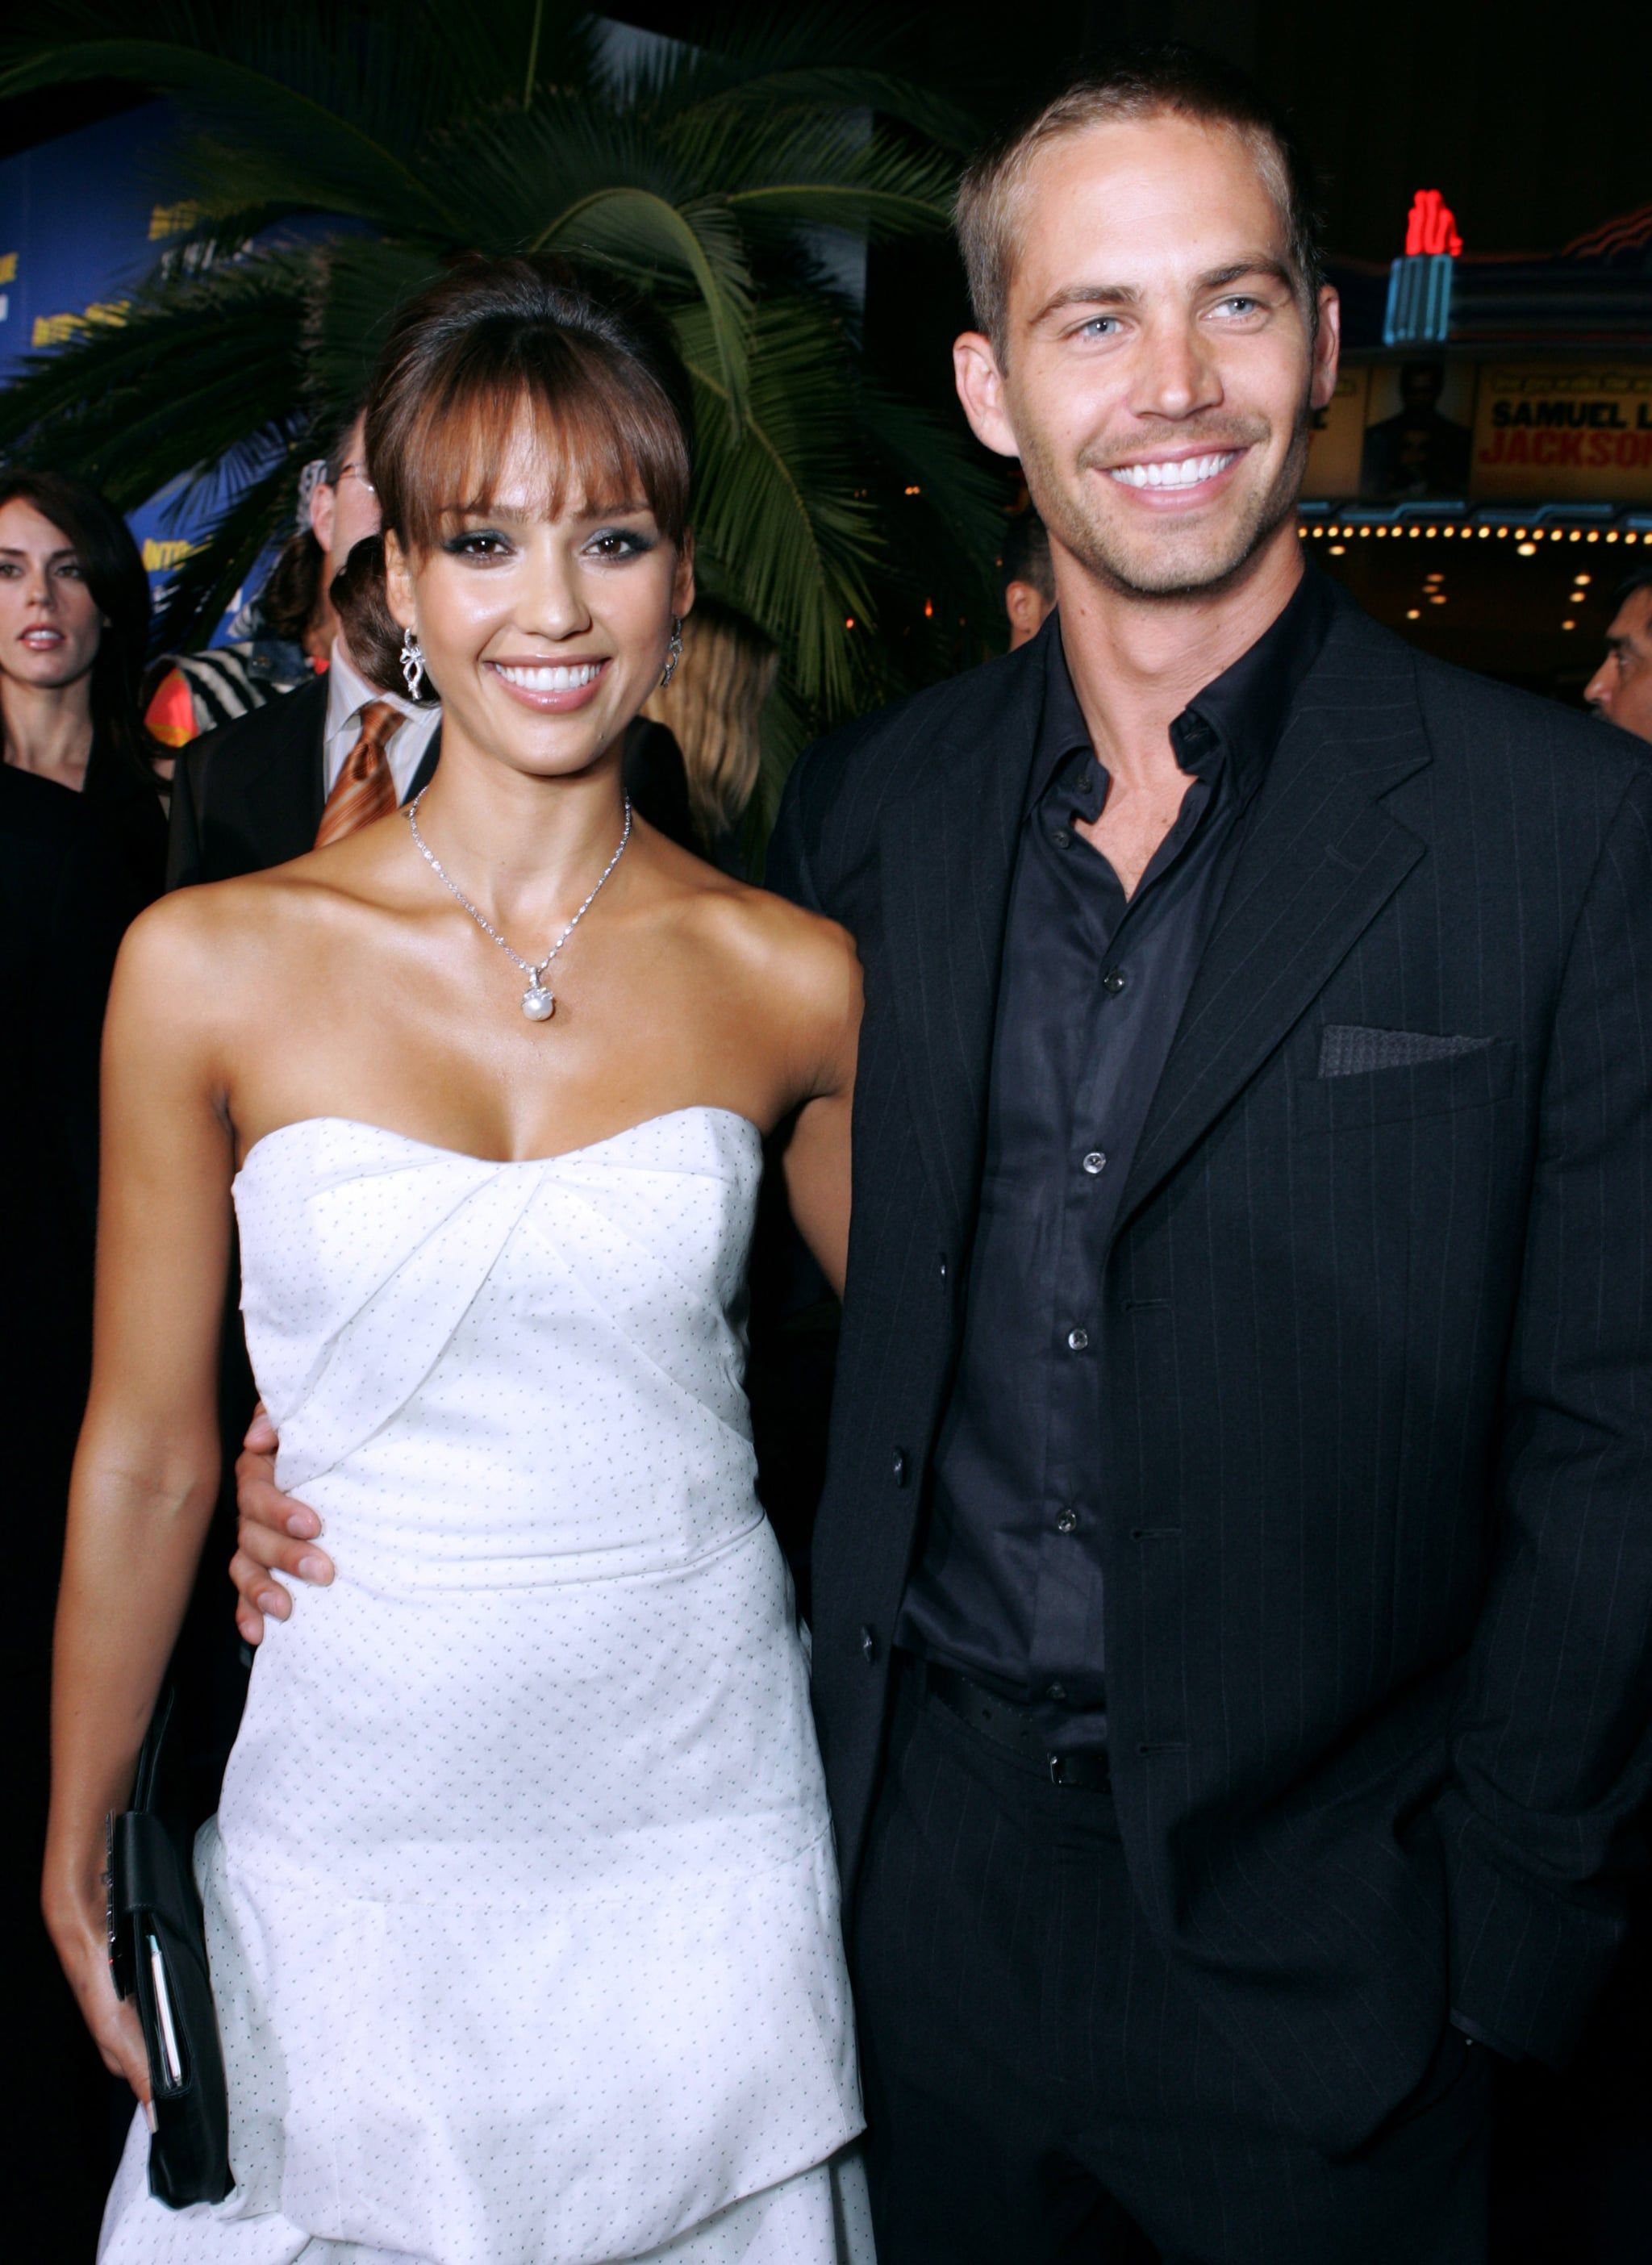 paul walker and jessica alba smiled for photos together at